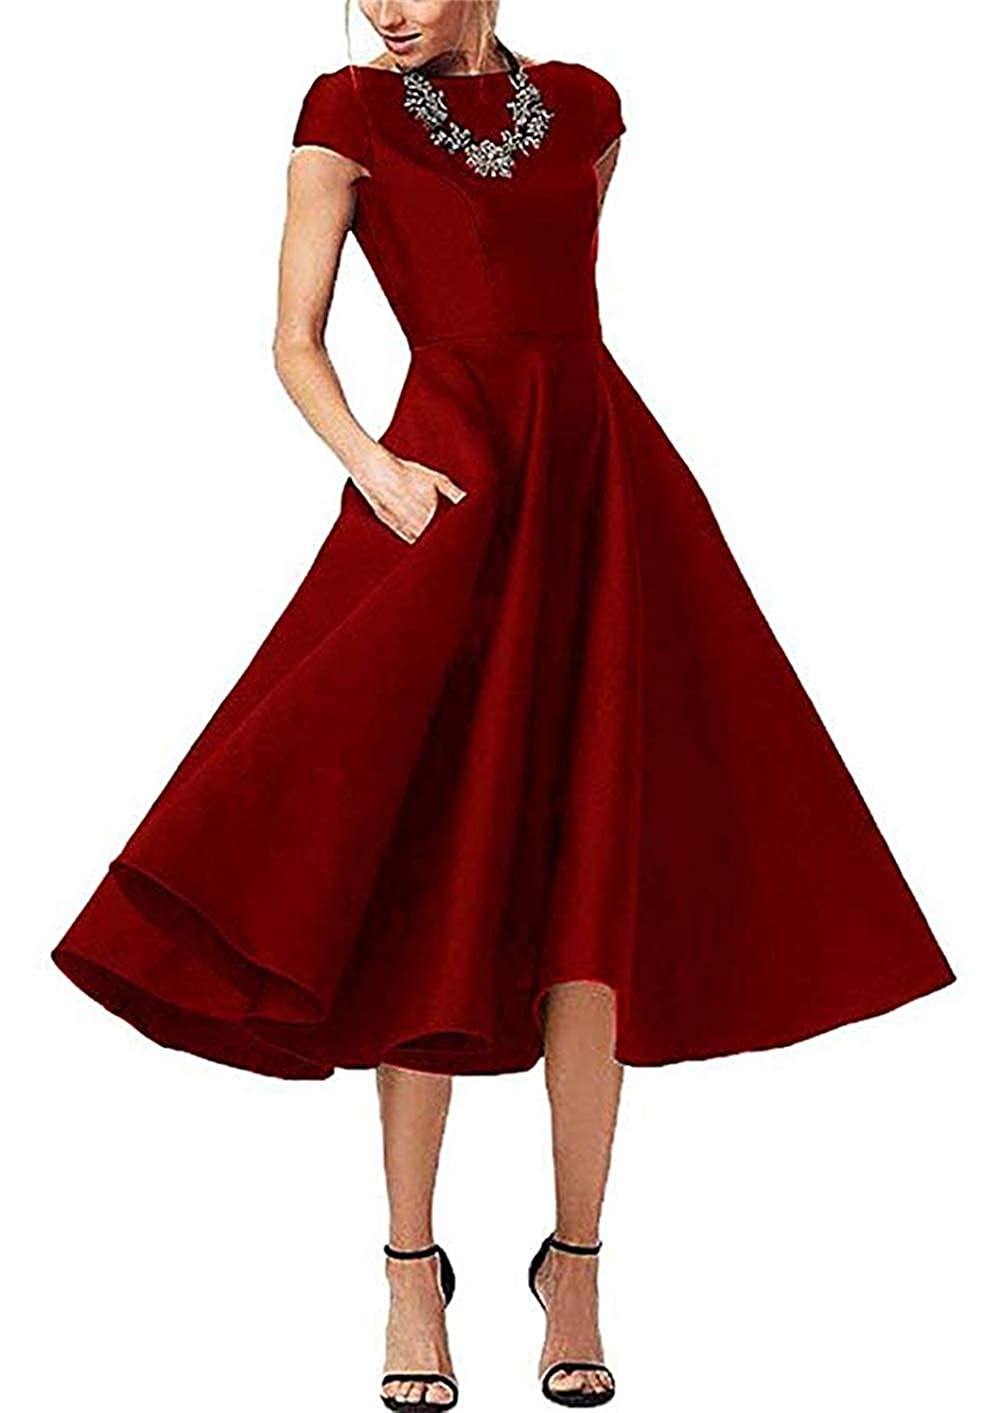 Dark Red tutu.vivi Women's Satin Tea Length Mother of The Bride Dresses Short Sleeves Prom Dress with Pockets